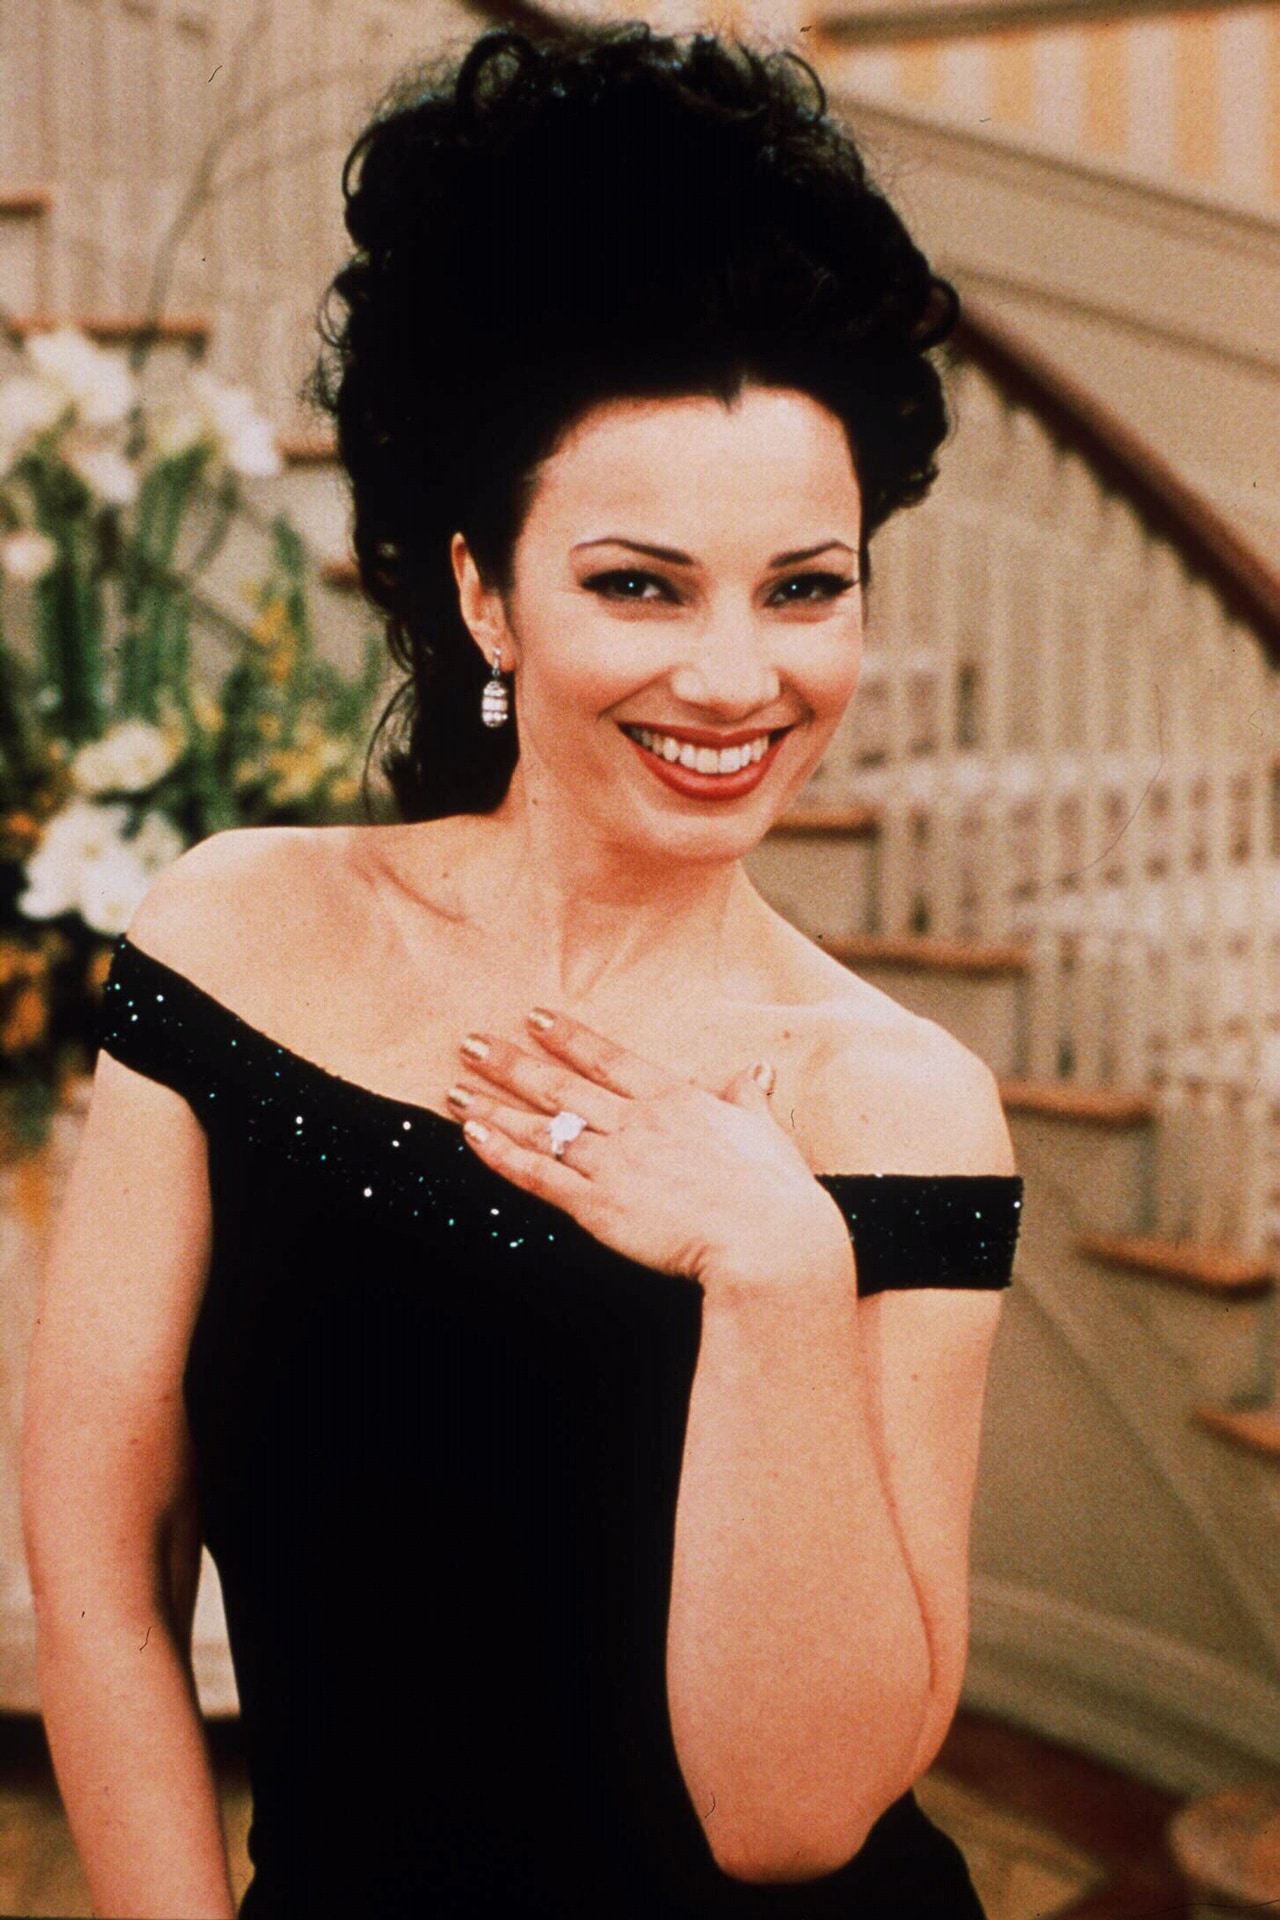 Fran Drescher confirms The Nanny reboot is in the works